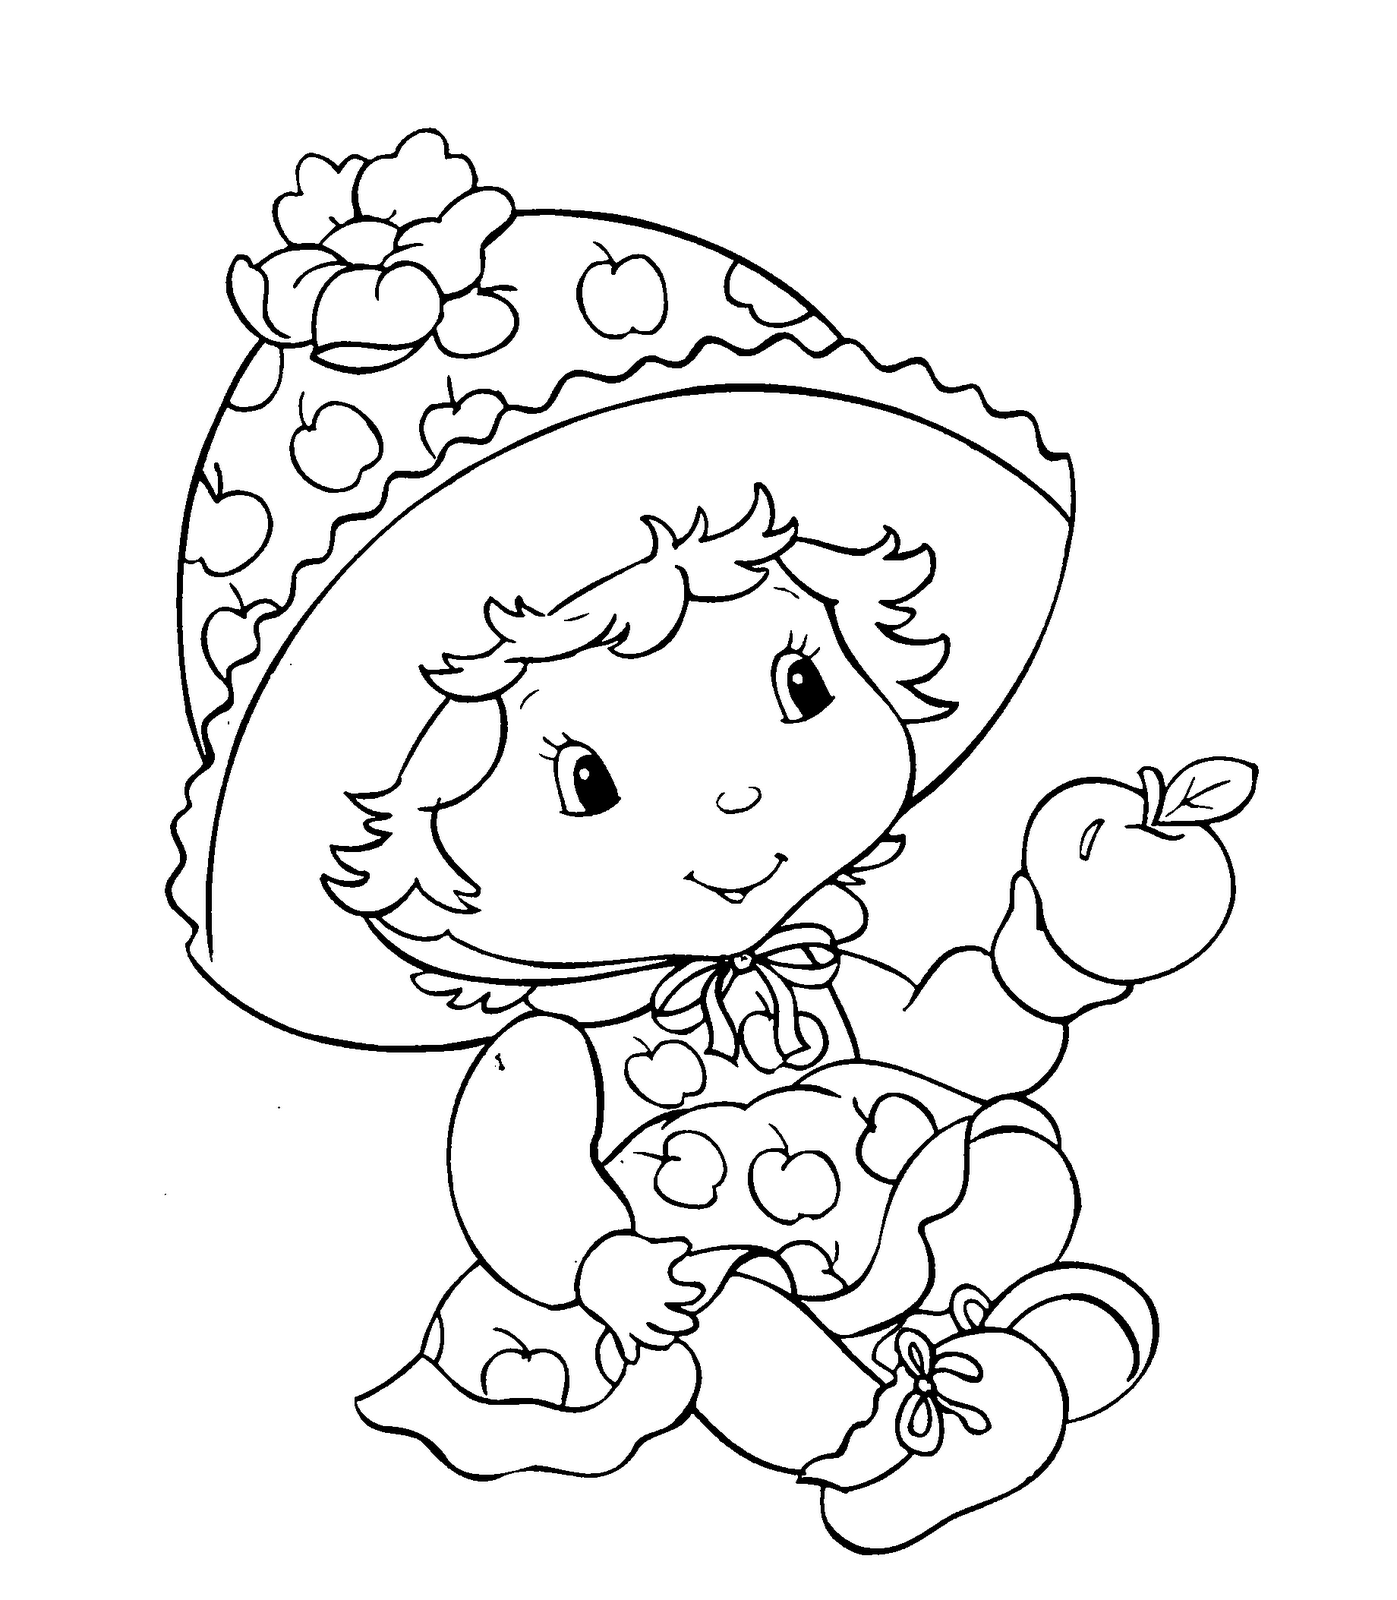 strawberry shortcake pictures to color craftoholic strawberry shortcake coloring pages pictures shortcake strawberry to color